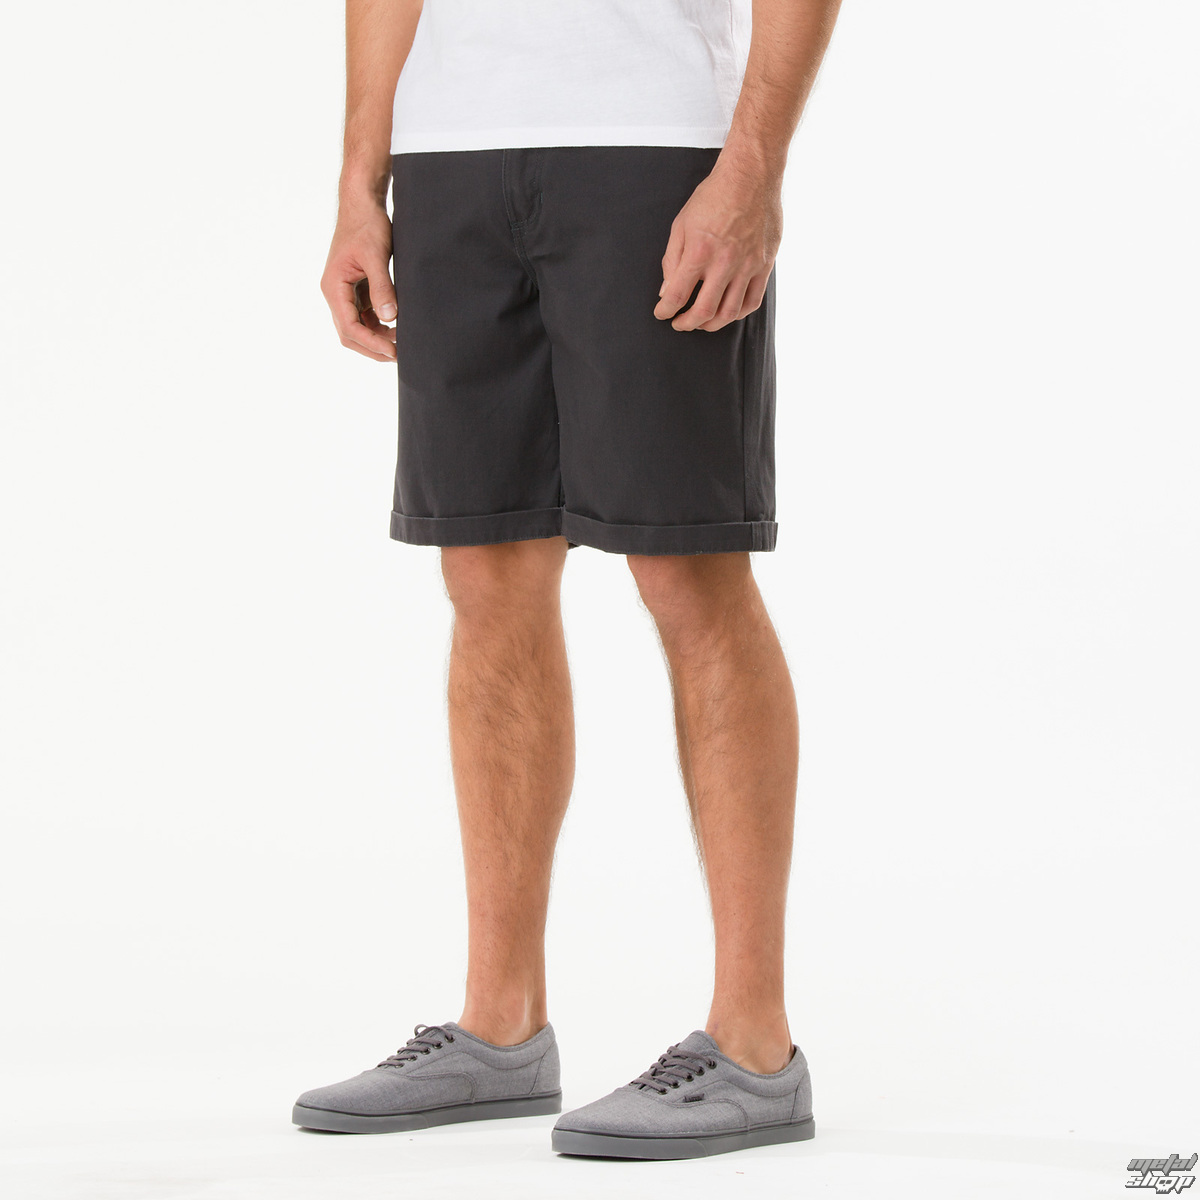 vans with shorts